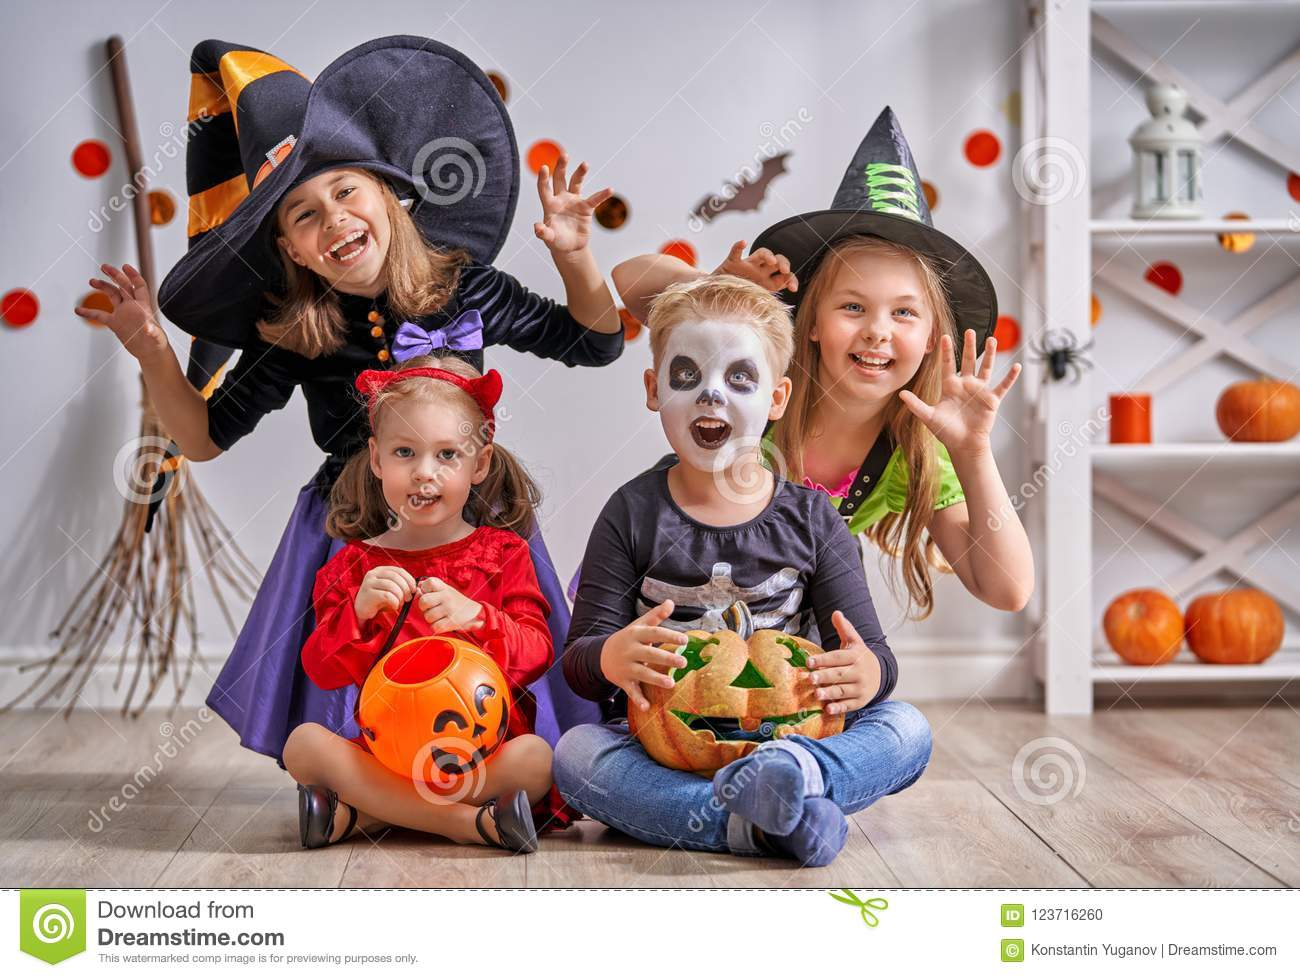 Halloween Costume Ideas For Three Sisters Cartoonview Co Source Children On Stock Photo Image Of Carnival 123716260